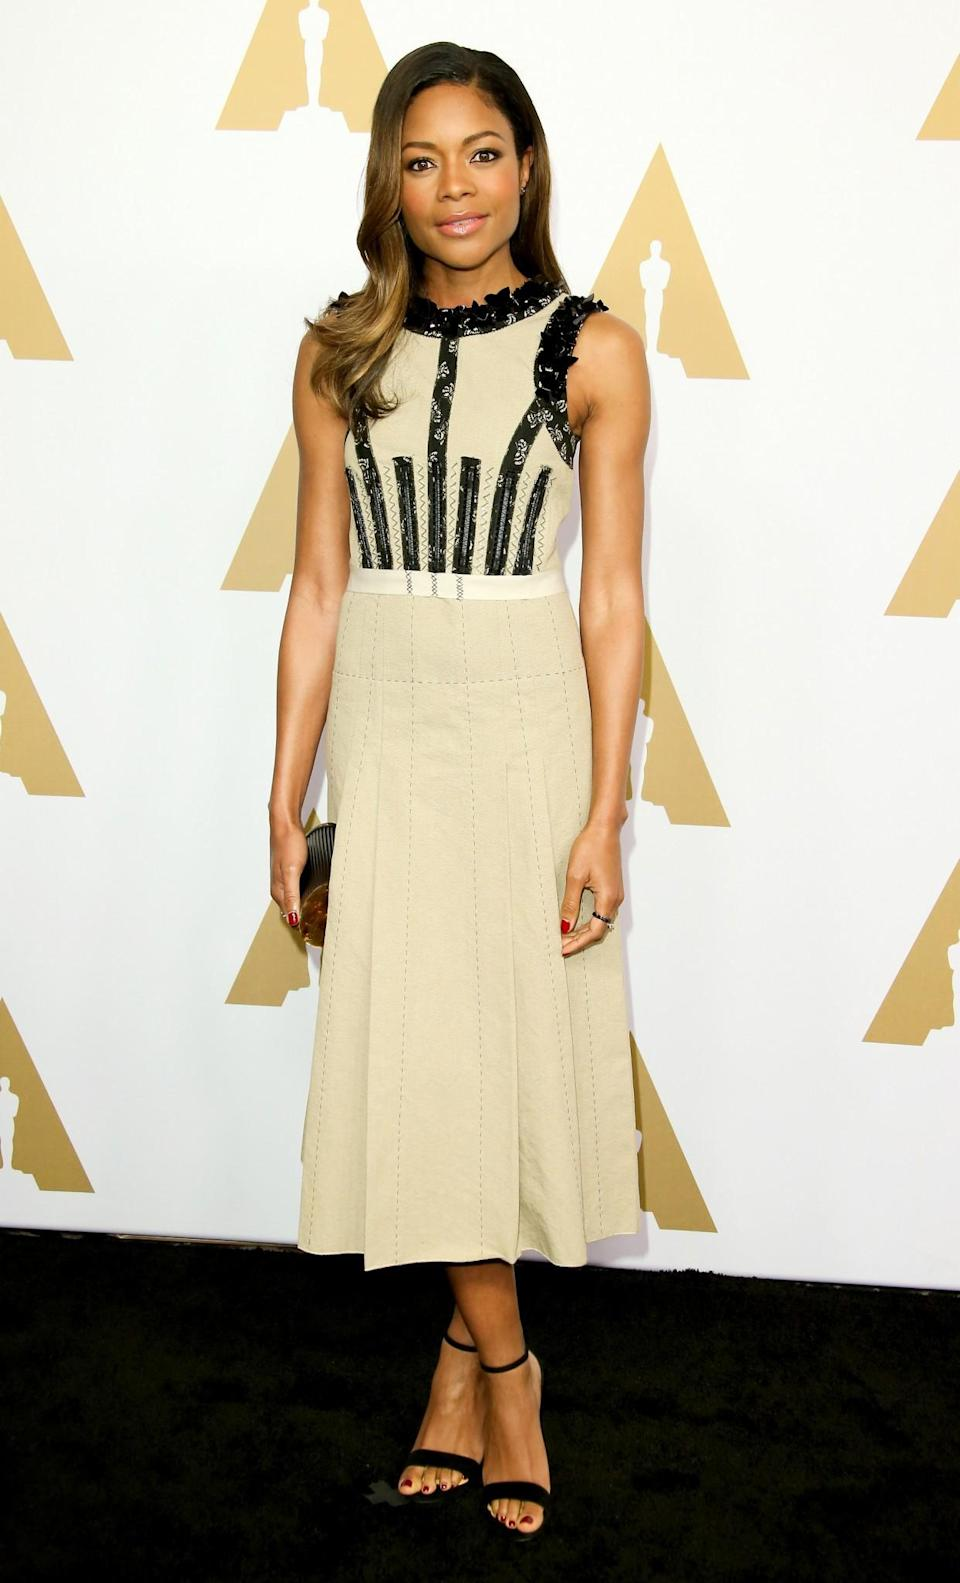 <p>The 'Moonlight' star wore a simple beige dress with lace trim by Bottega Veneta, which she paired with black suede sandals by Rene Caovilla. [Photo: Getty] </p>